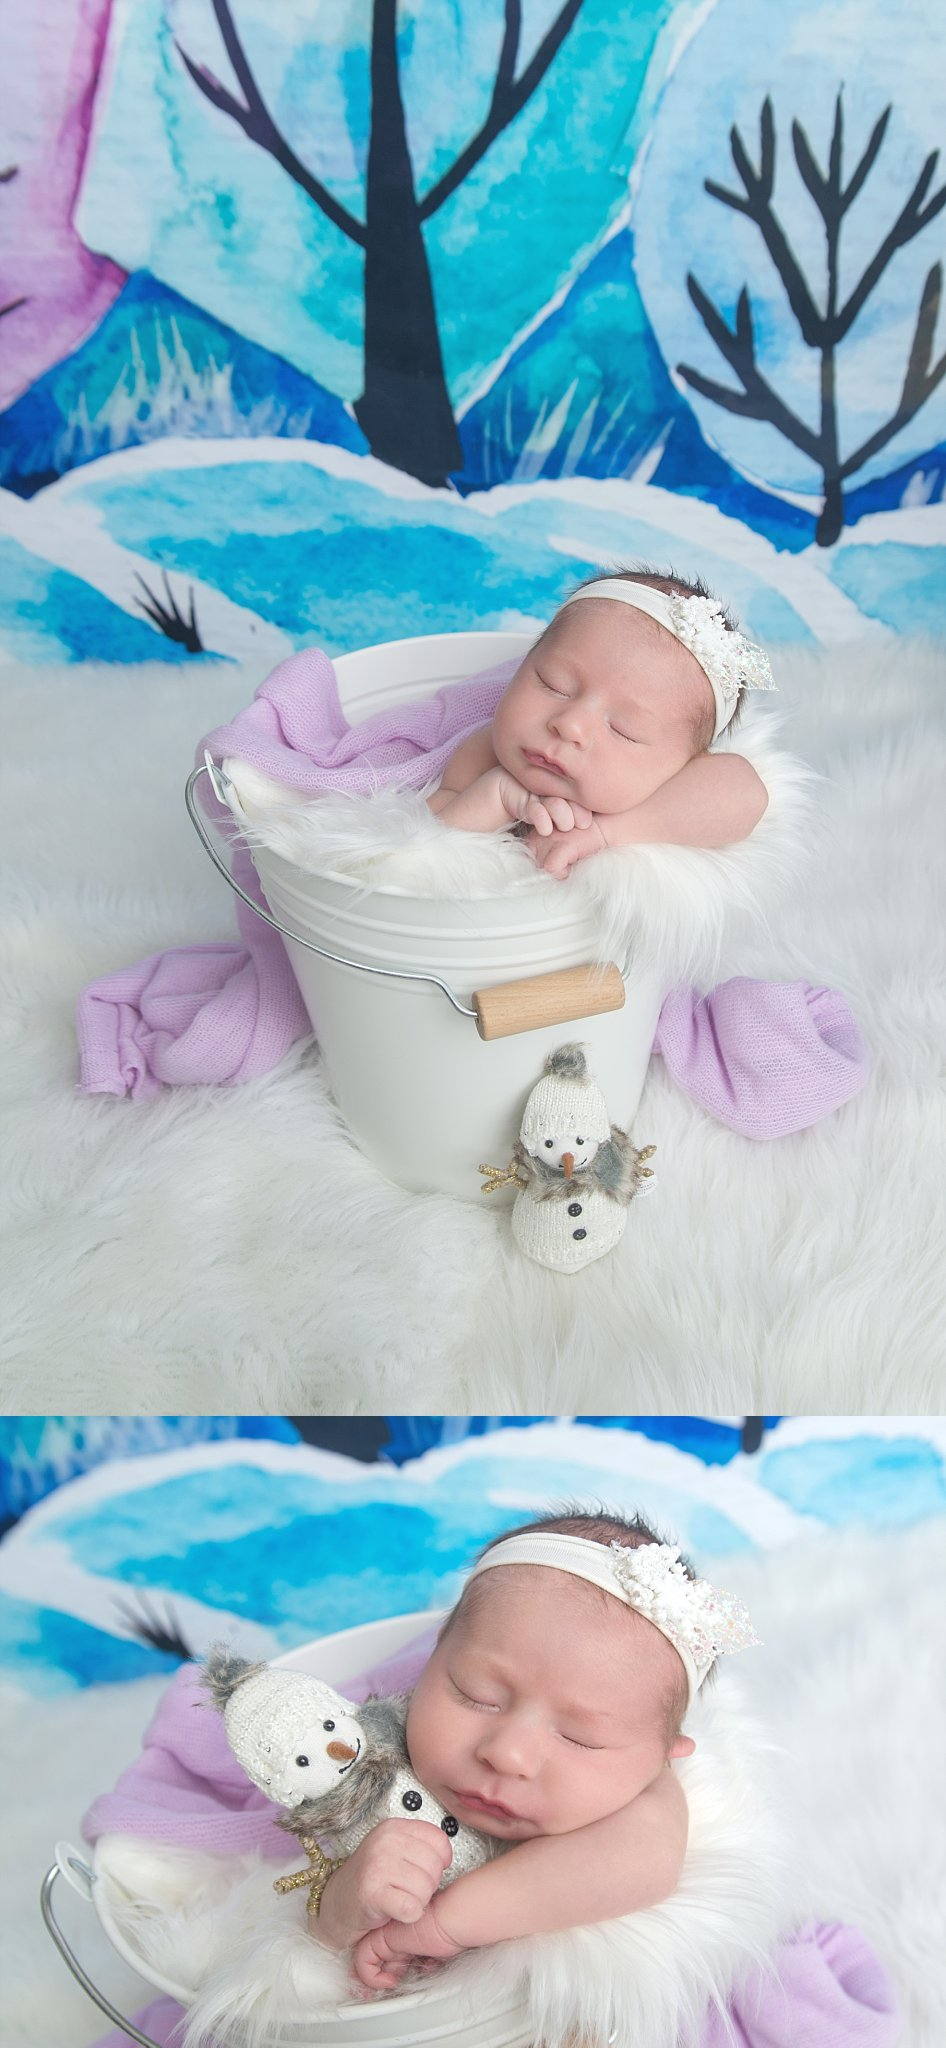 st-louis-newborn-photographer-baby-girl-on-snow-scene-with-snowman.jpg